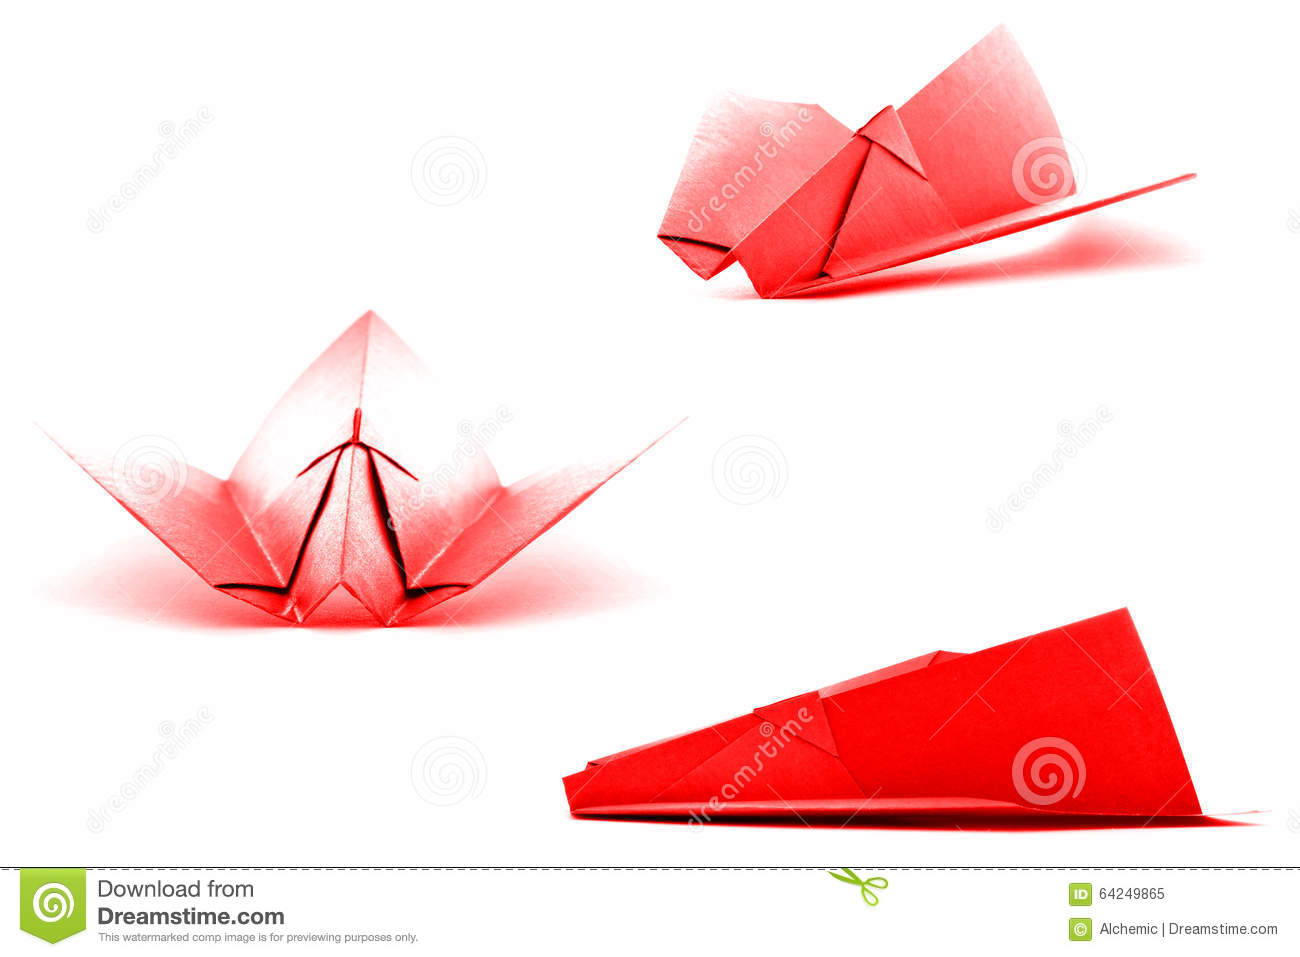 Red paper plane set, origami collection isolated on white background